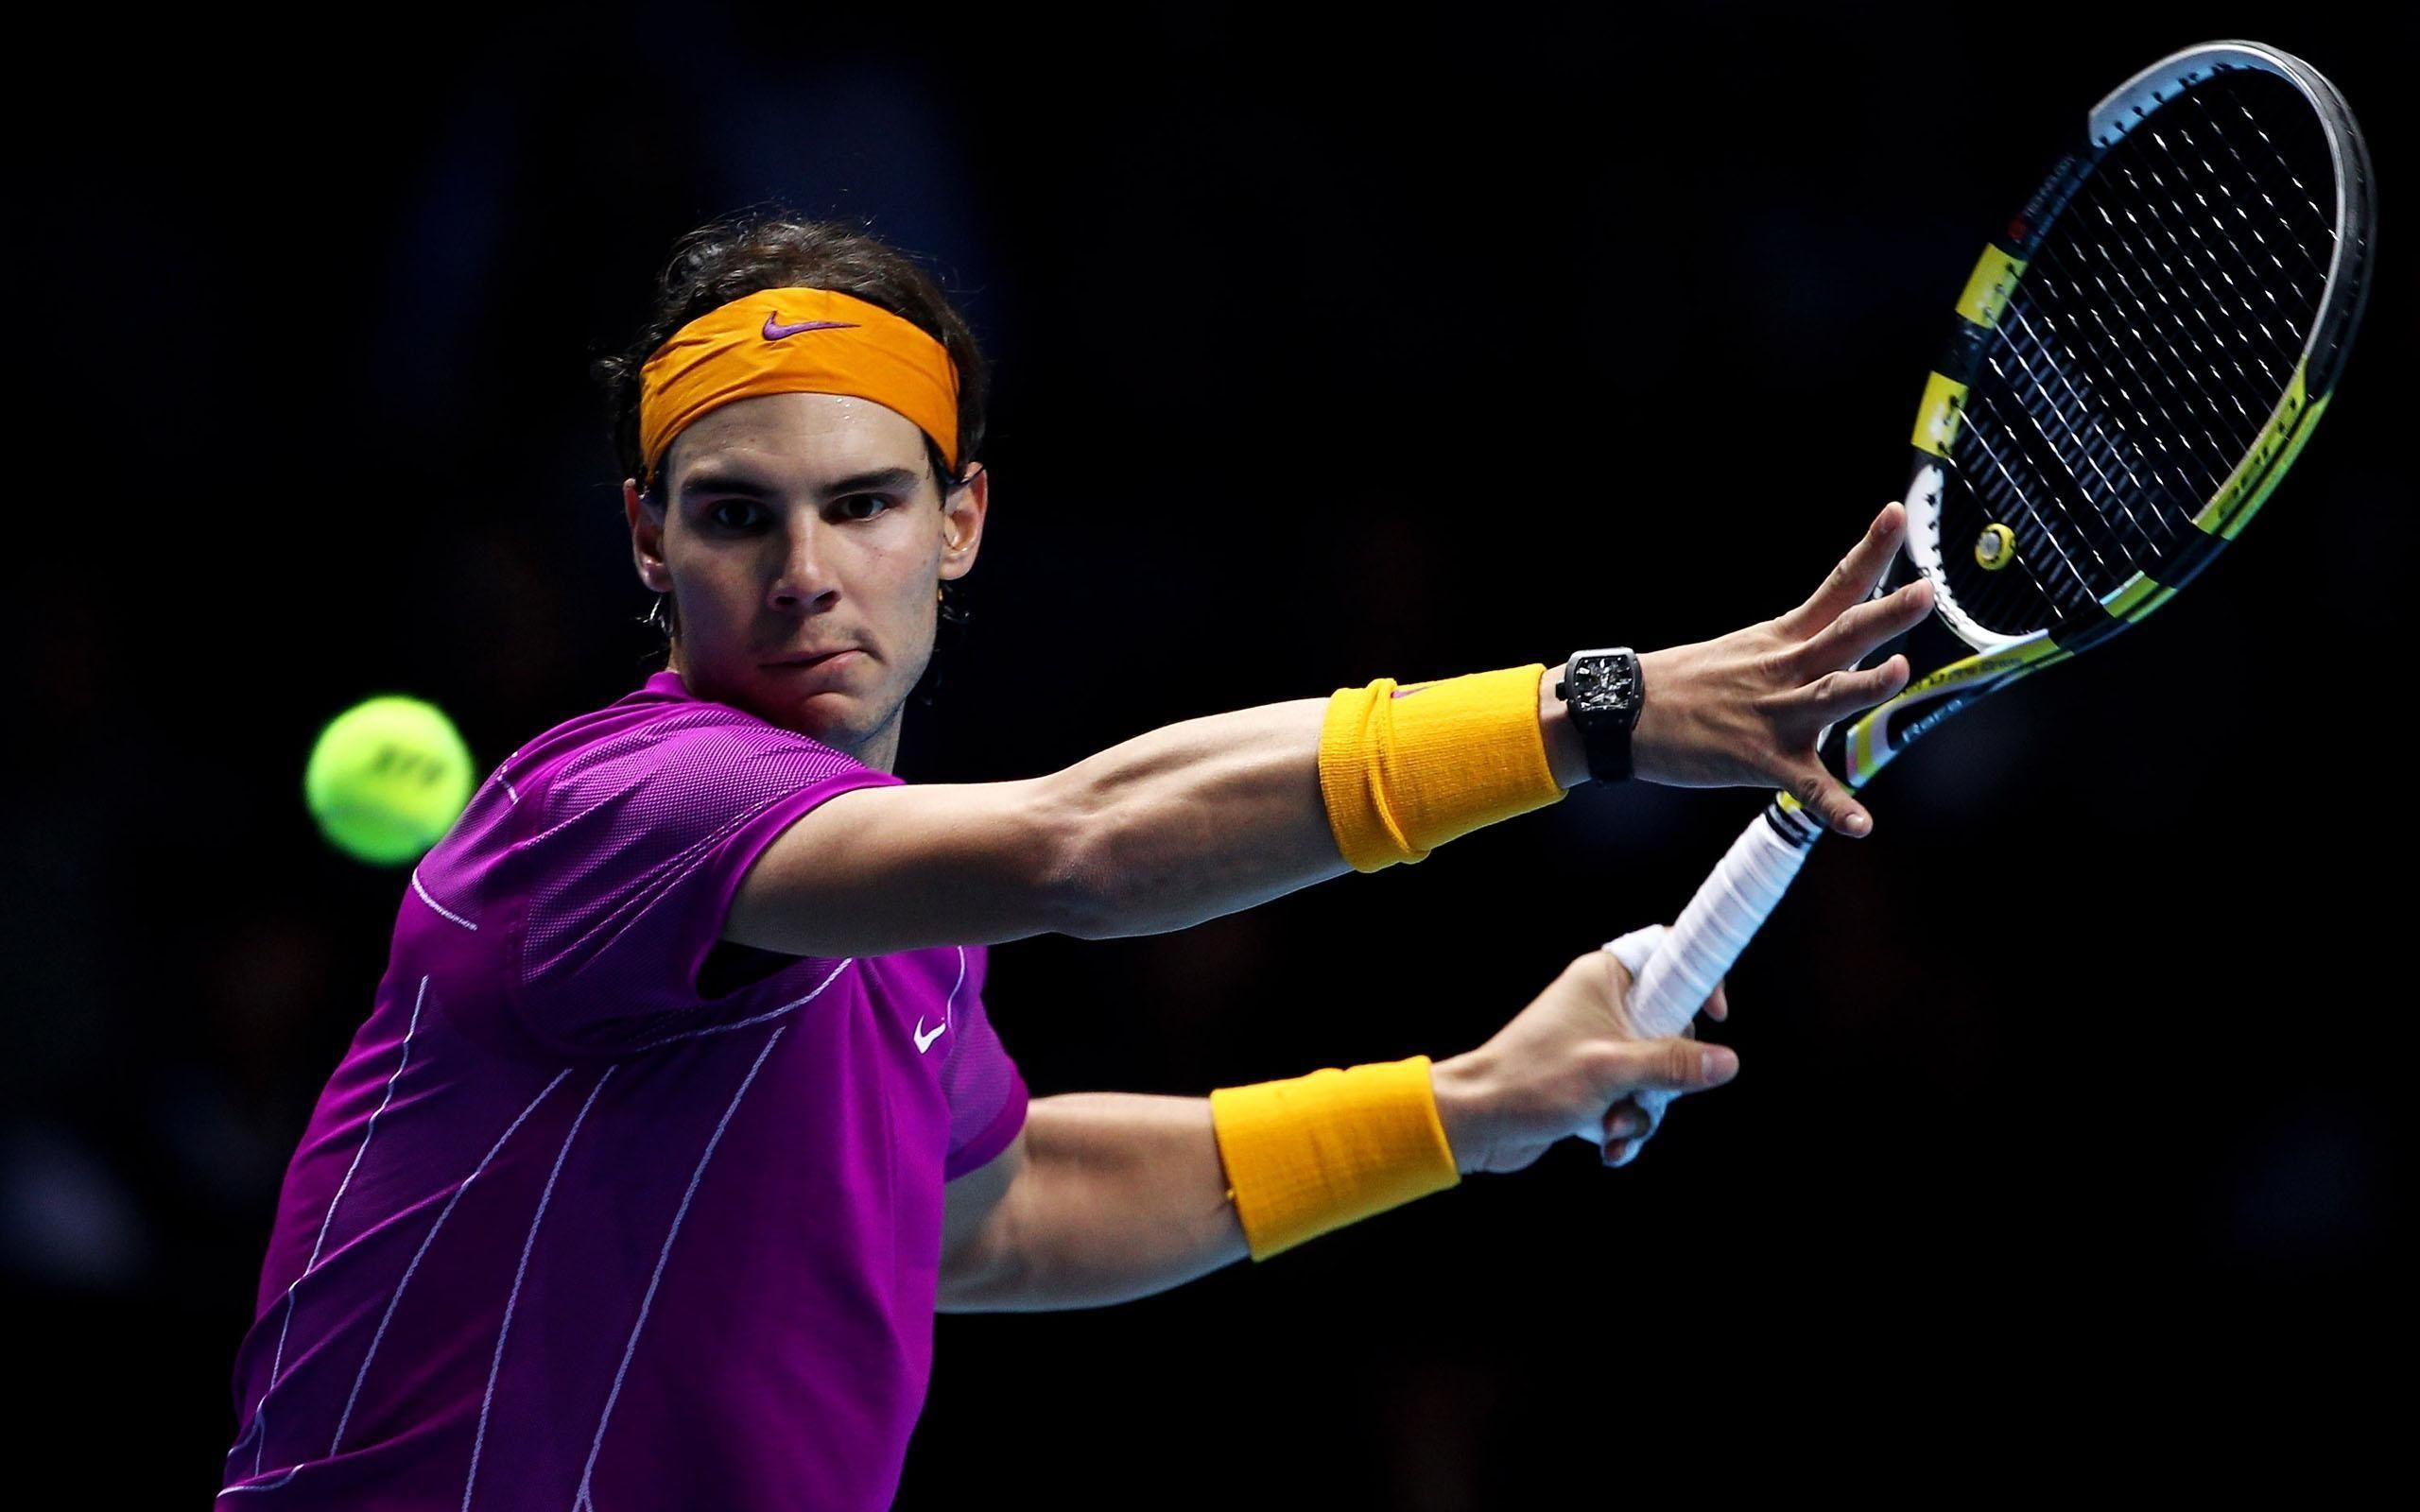 rafael nadal wallpapers - wallpaper cave